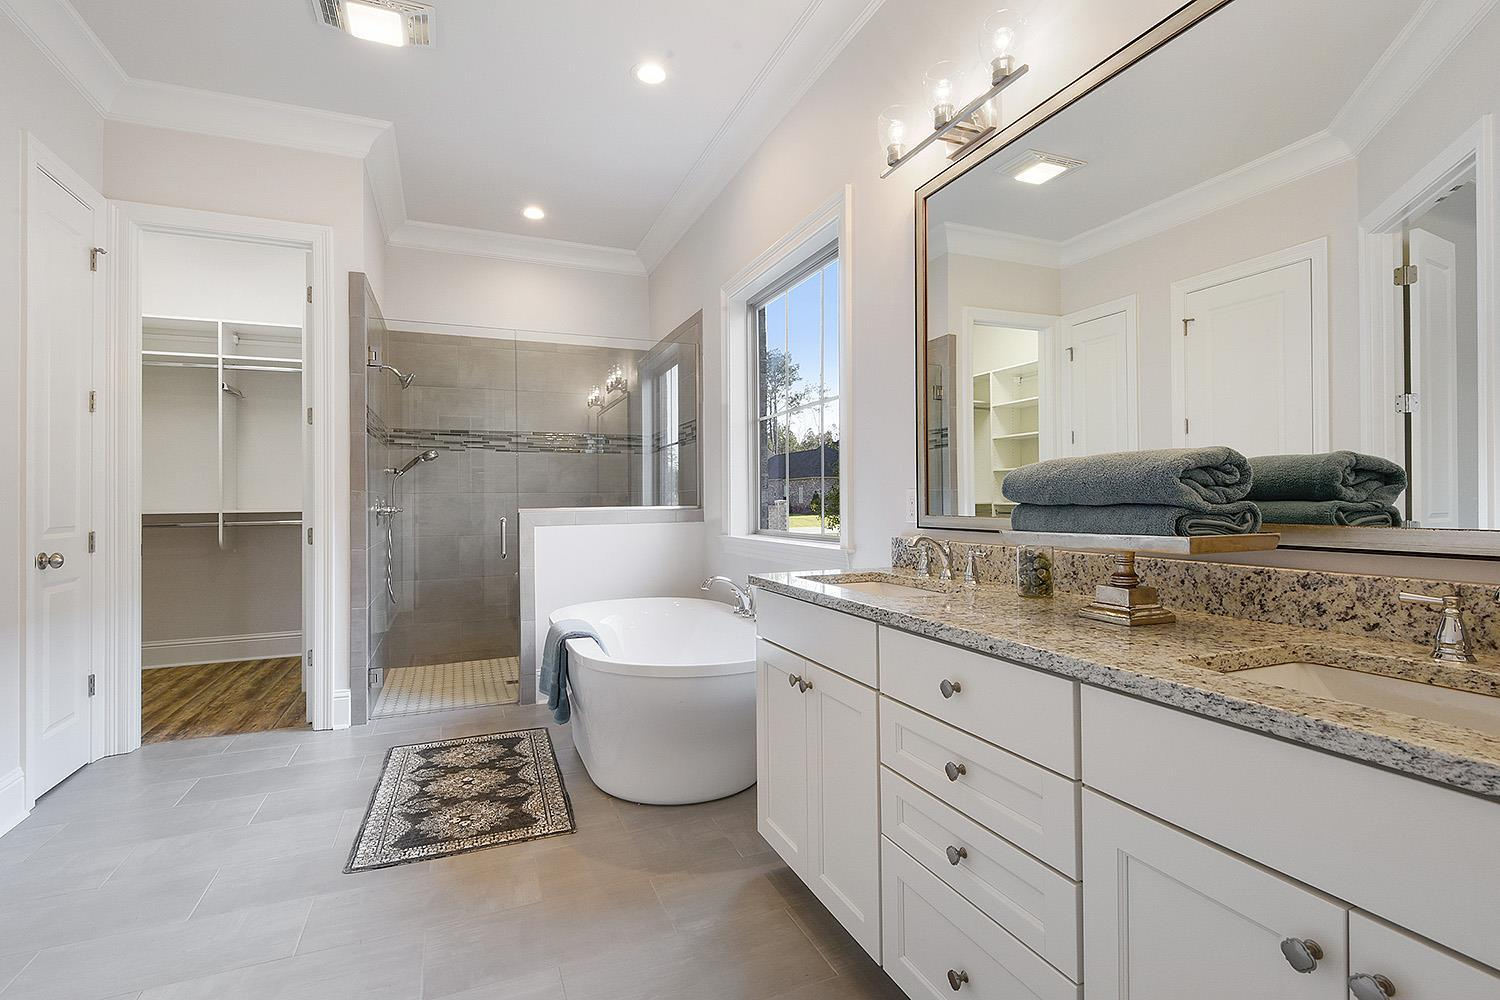 Bathroom featured in the Camille By Highland Homes in New Orleans, LA